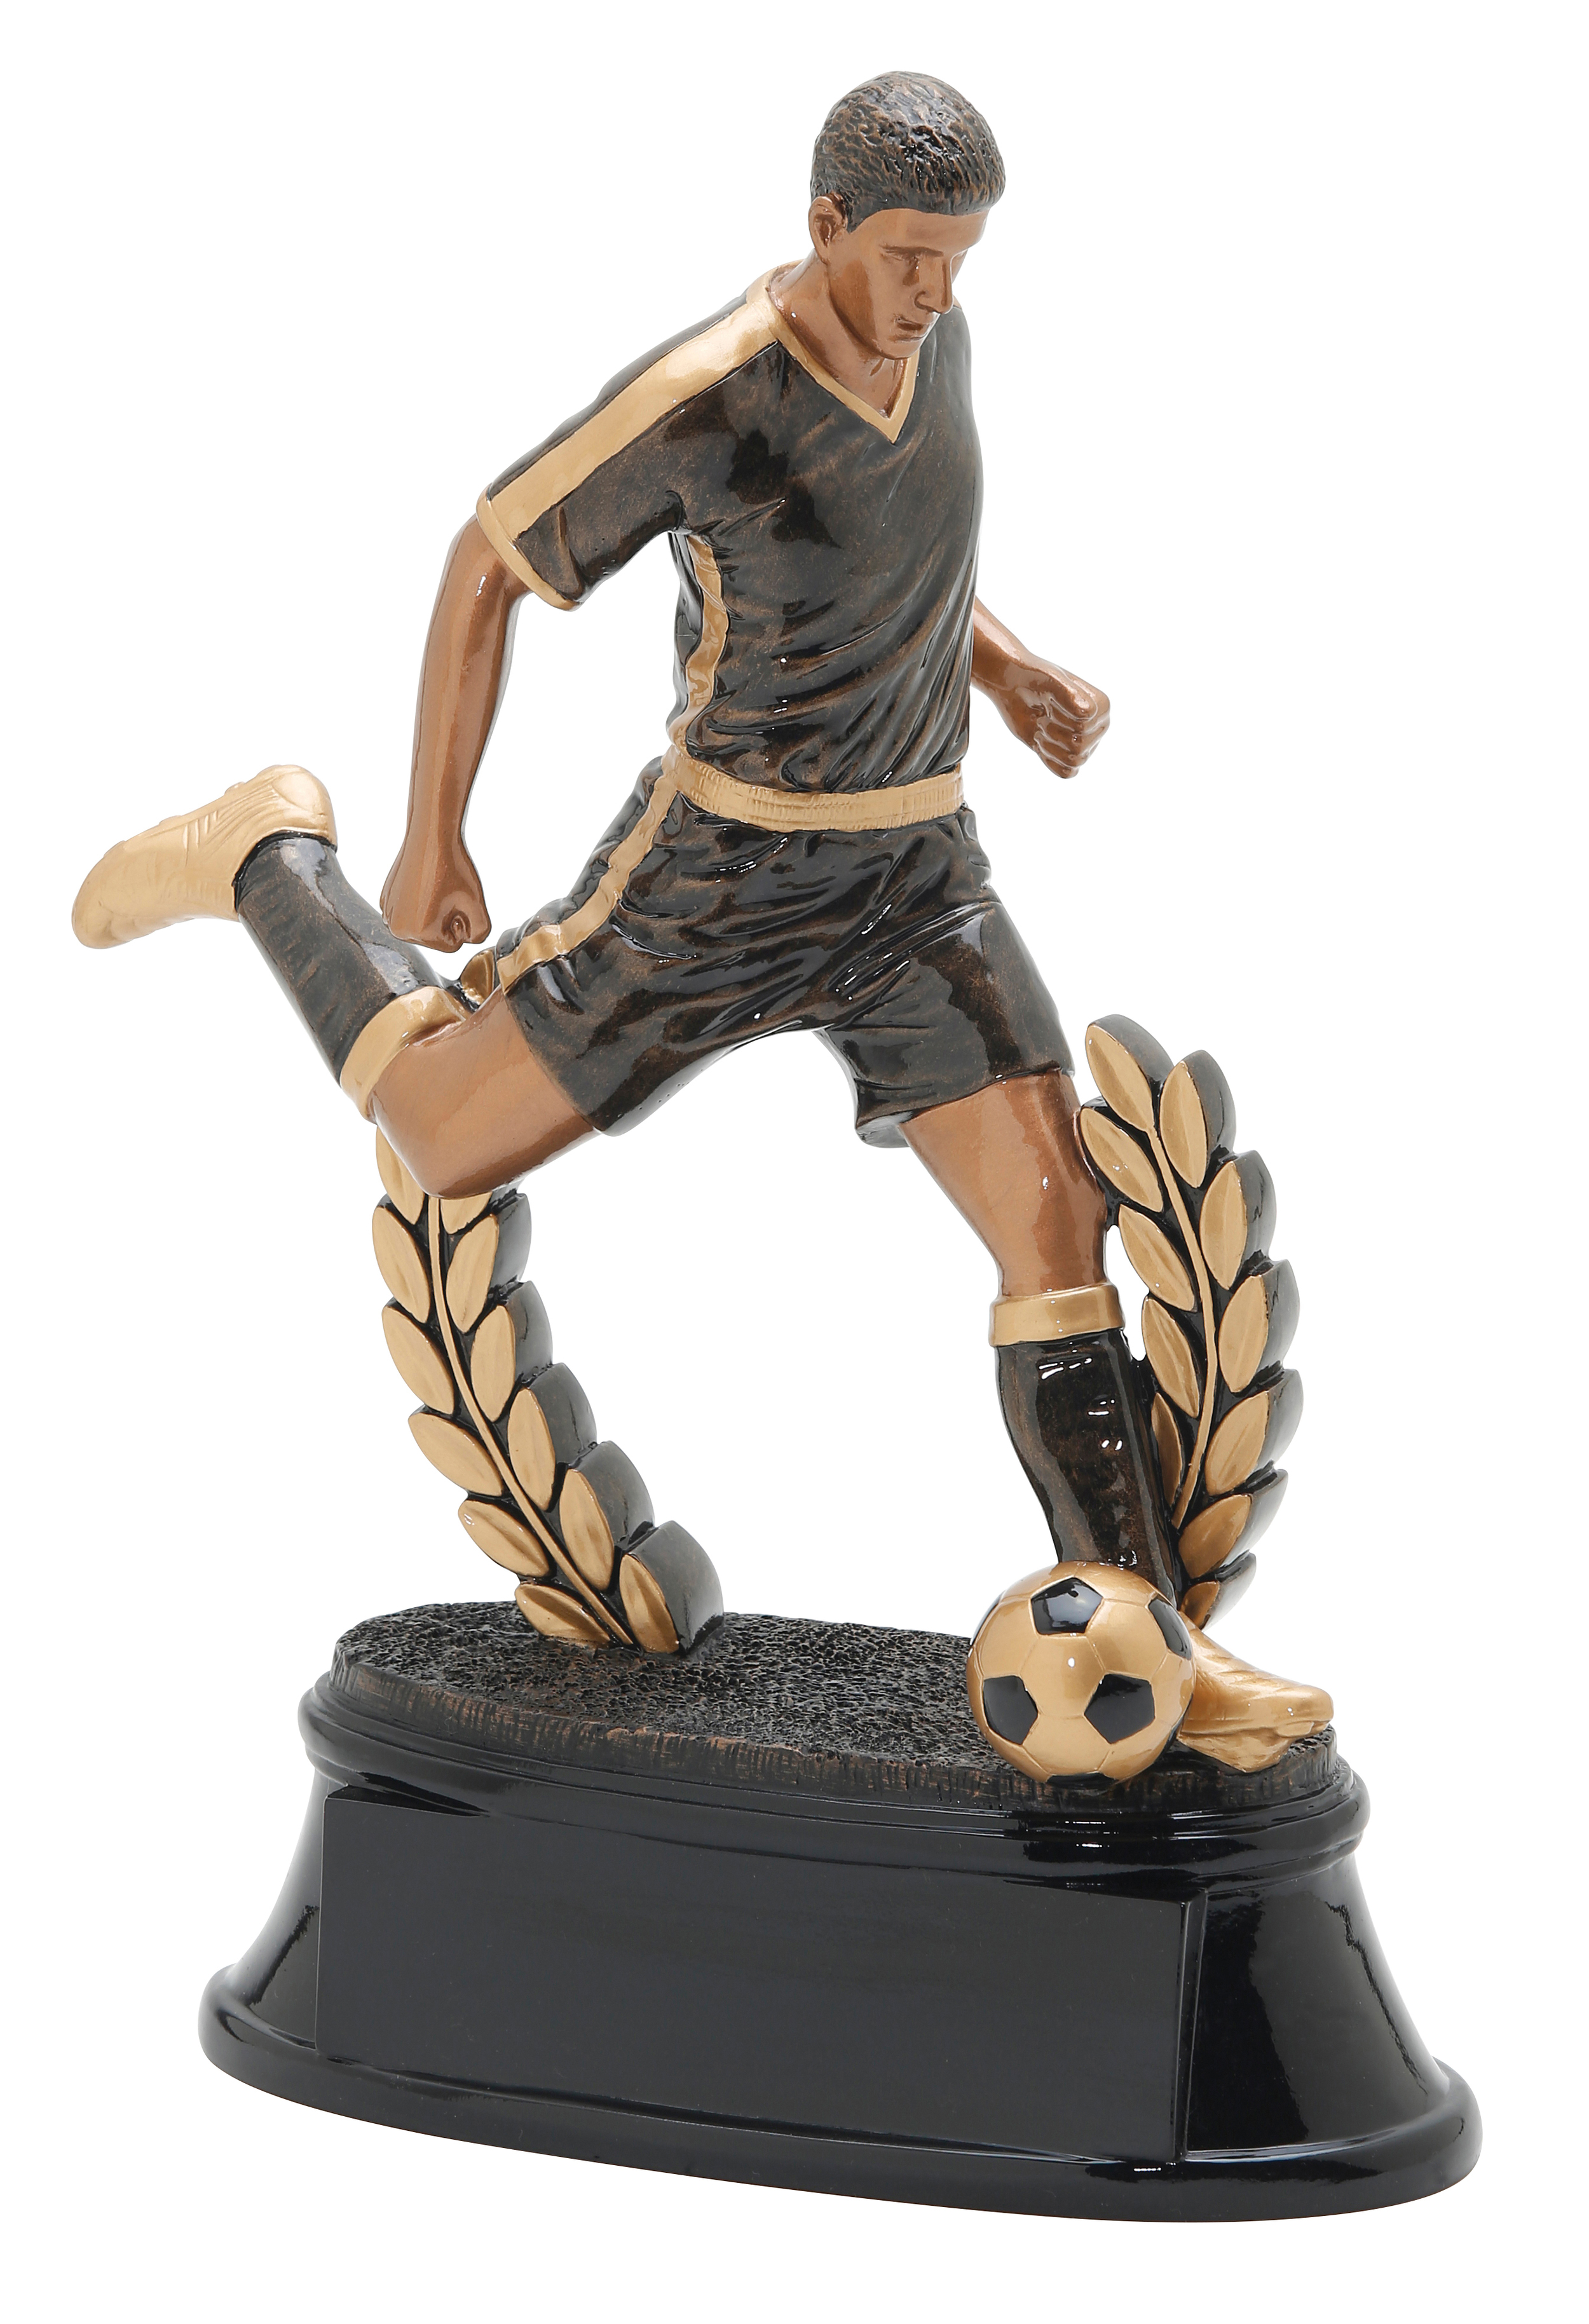 """Soccer- Male   X-Large - 90714GS - 11"""" tall  Large - 90614GS - 9.5"""" tall  Medium - 90514GS - 7.75"""" tall  Small - 90414GS - 6"""" tall"""